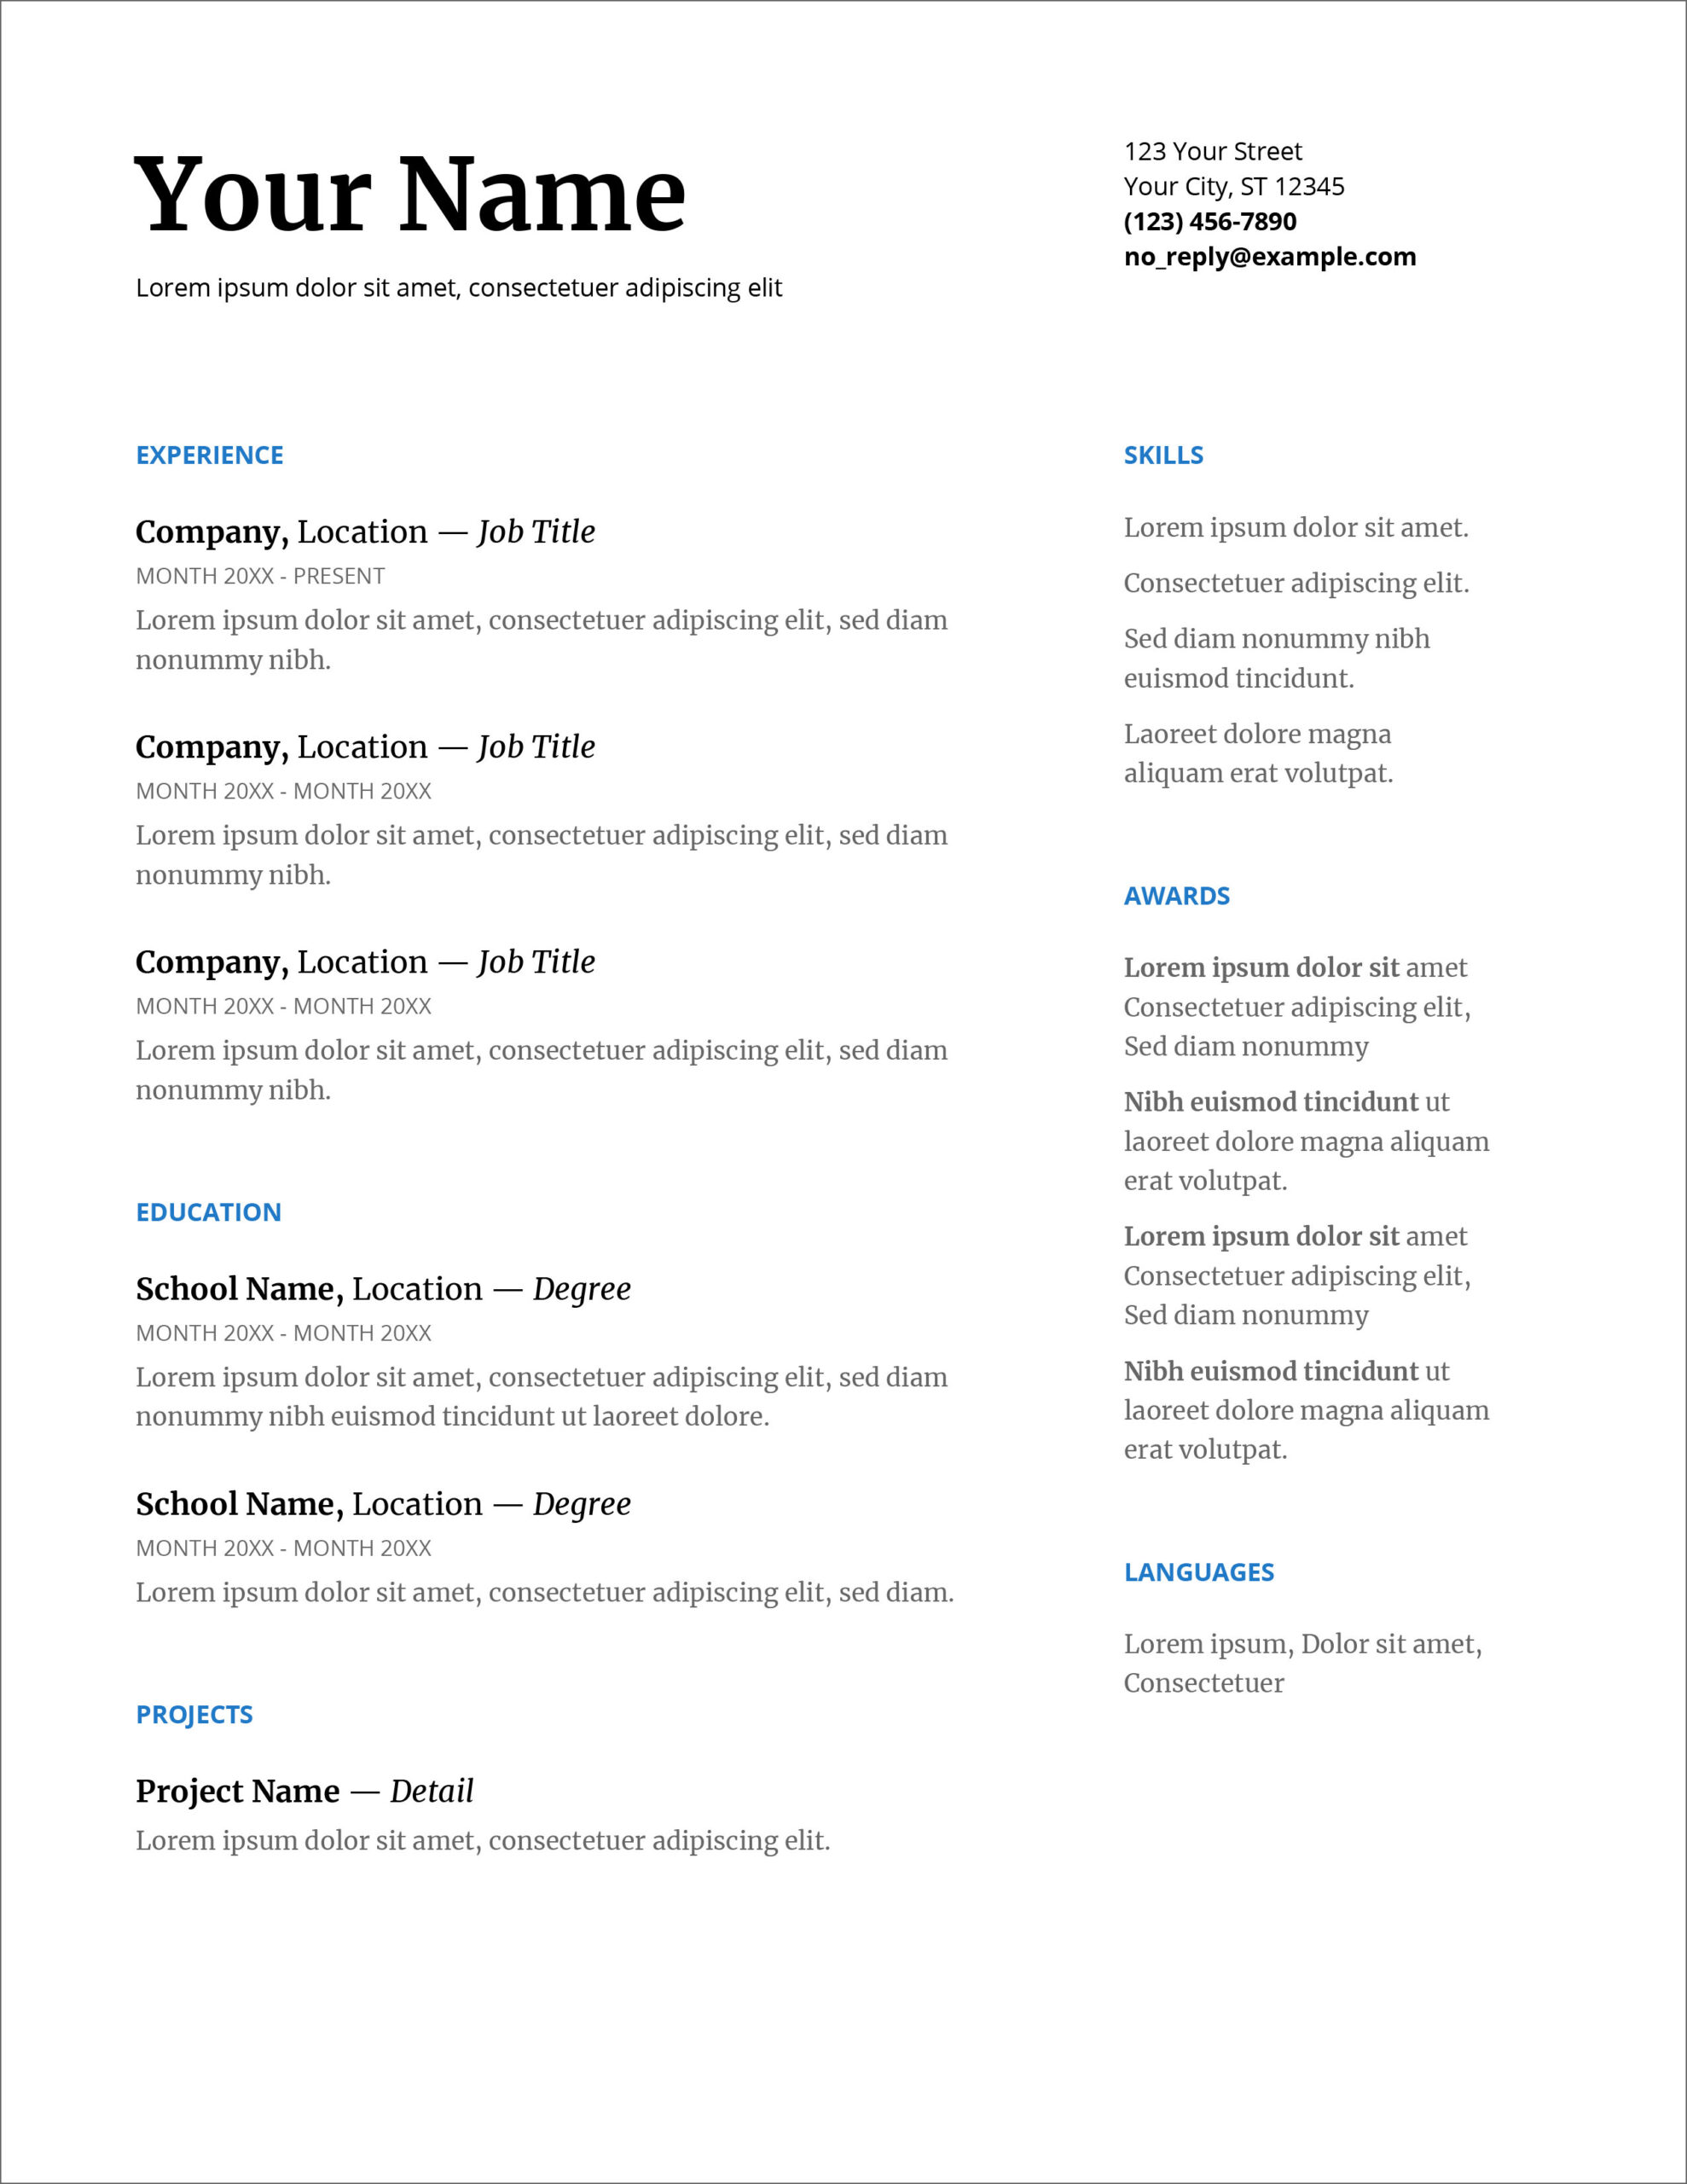 free modern resume cv templates minimalist simple clean design format for fresher 12th Resume Resume Format For Fresher 12th Pass